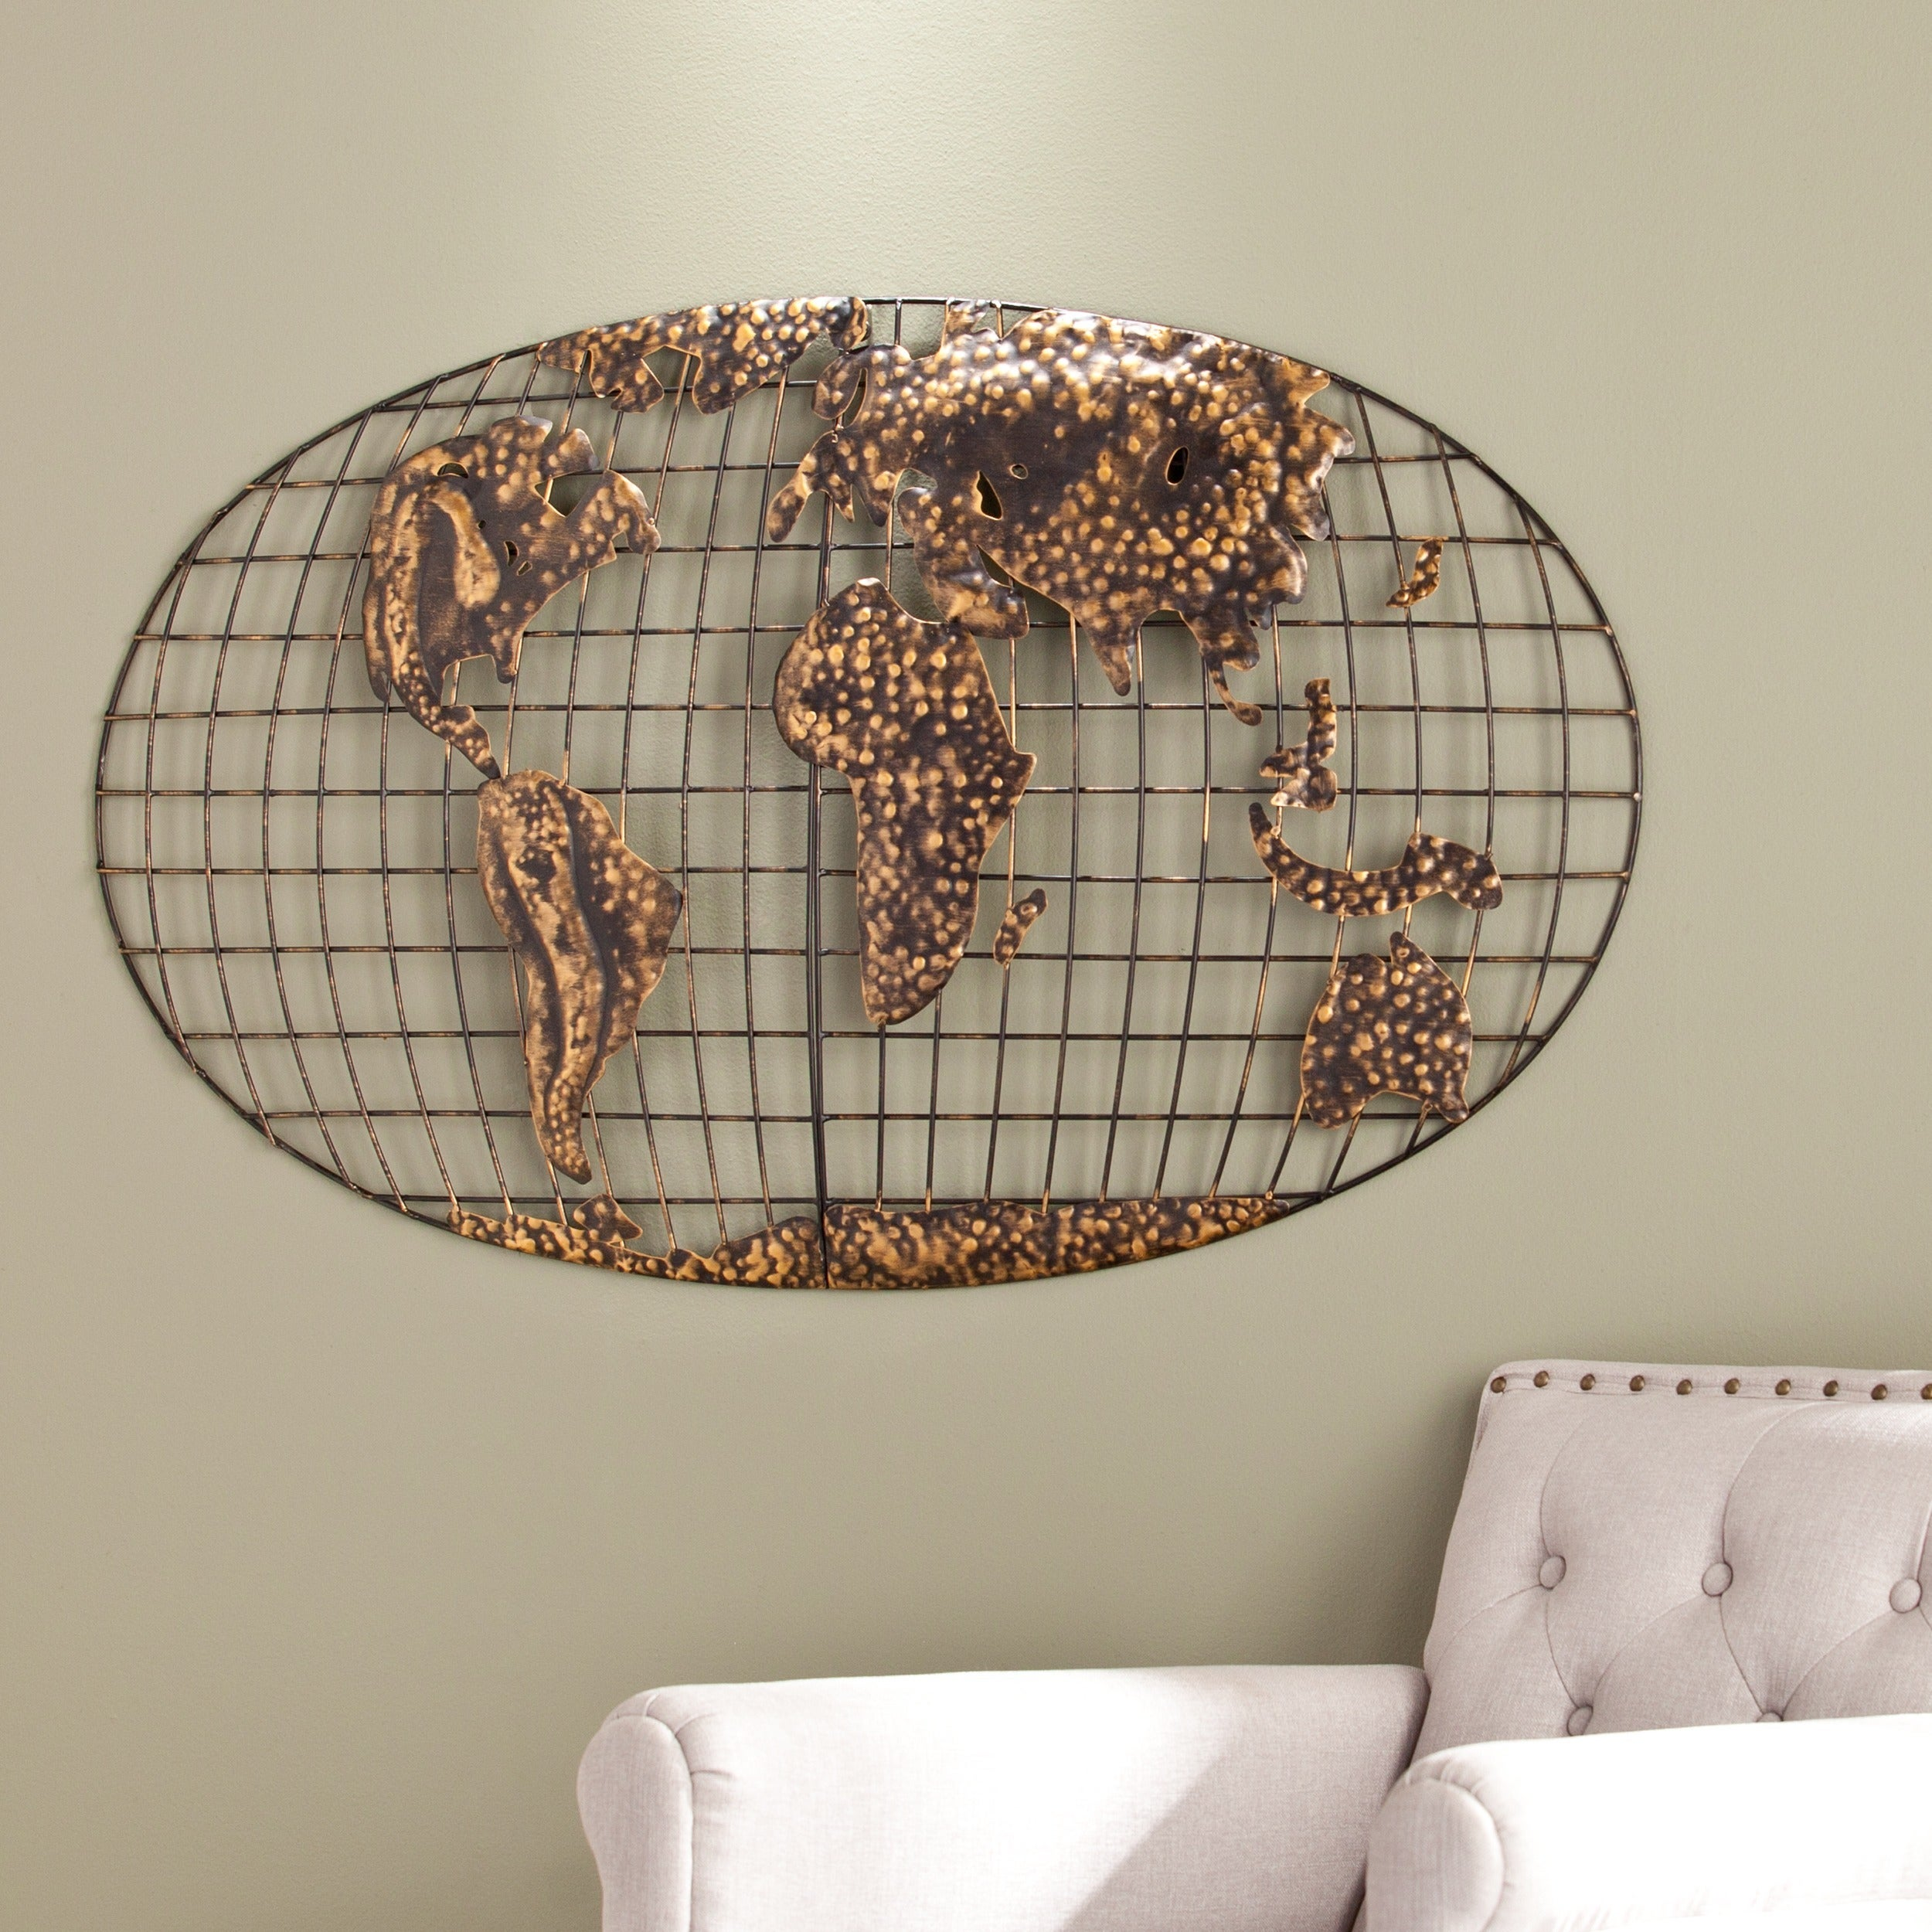 Shop harper blvd iron world map wall sculpture on sale free shop harper blvd iron world map wall sculpture on sale free shipping today overstock 1510668 gumiabroncs Image collections